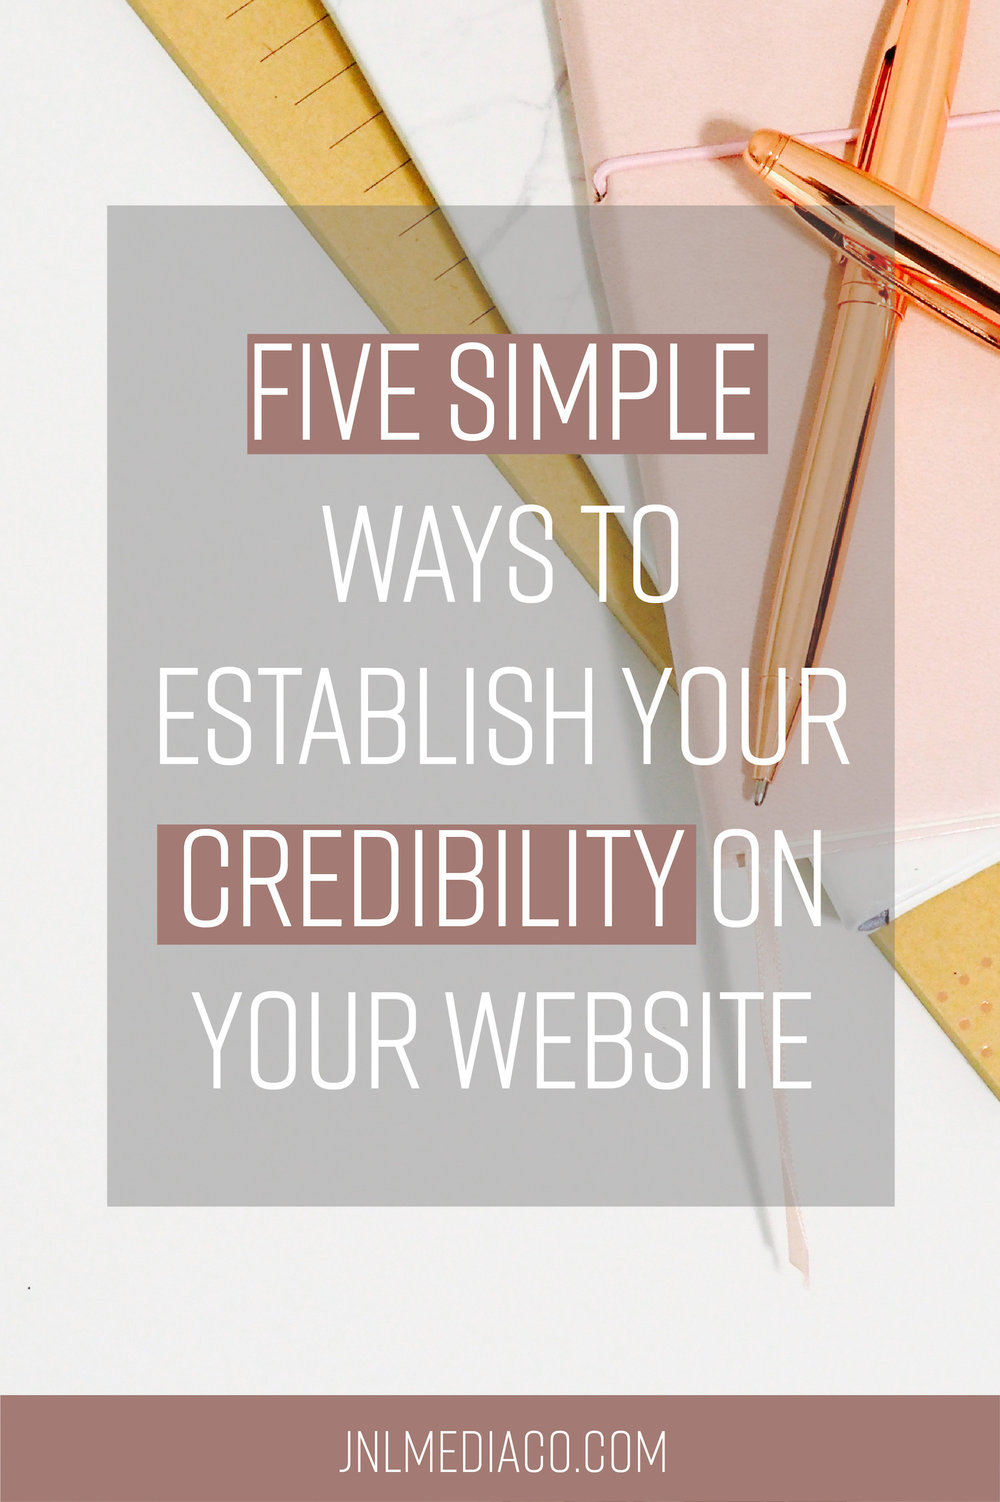 One of the main reasons service-based business owners need a website is to build their credibility and establish trust with their audience. How can you do this effectively?